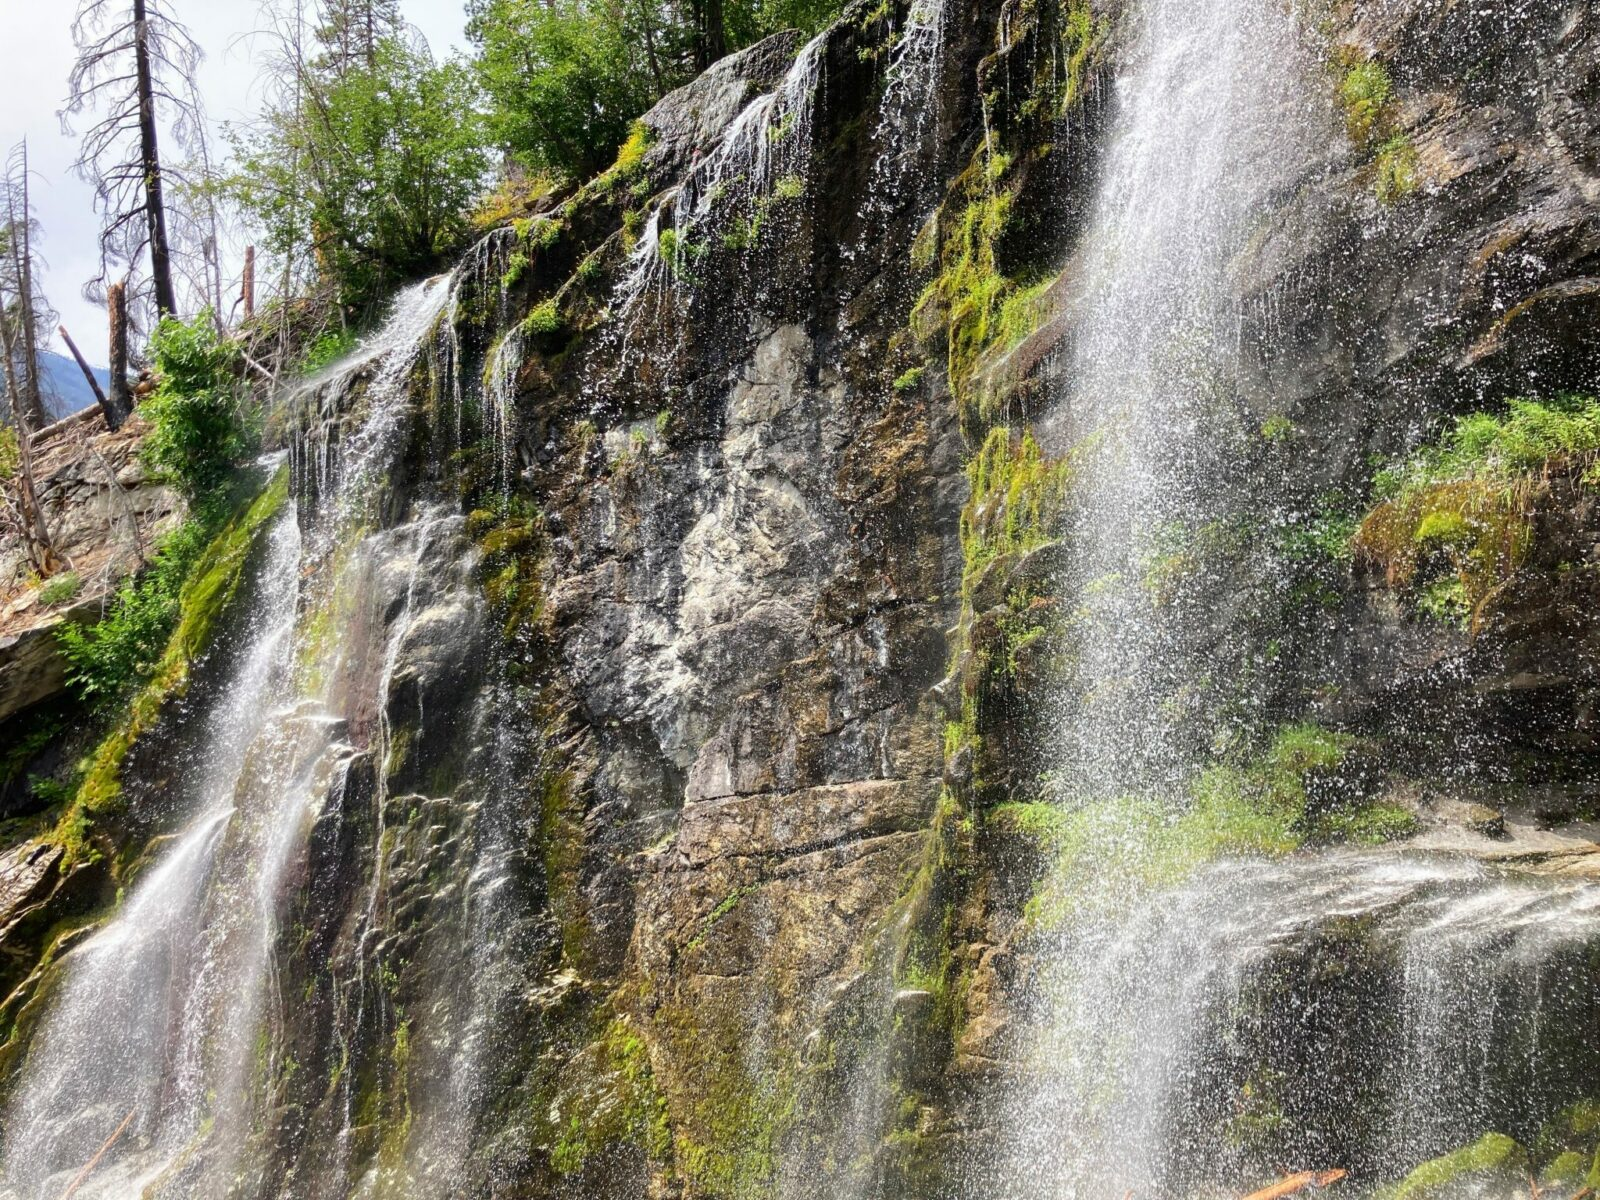 Multiple cascades of Silver Falls tumble down a vertical cliff with occasional moss